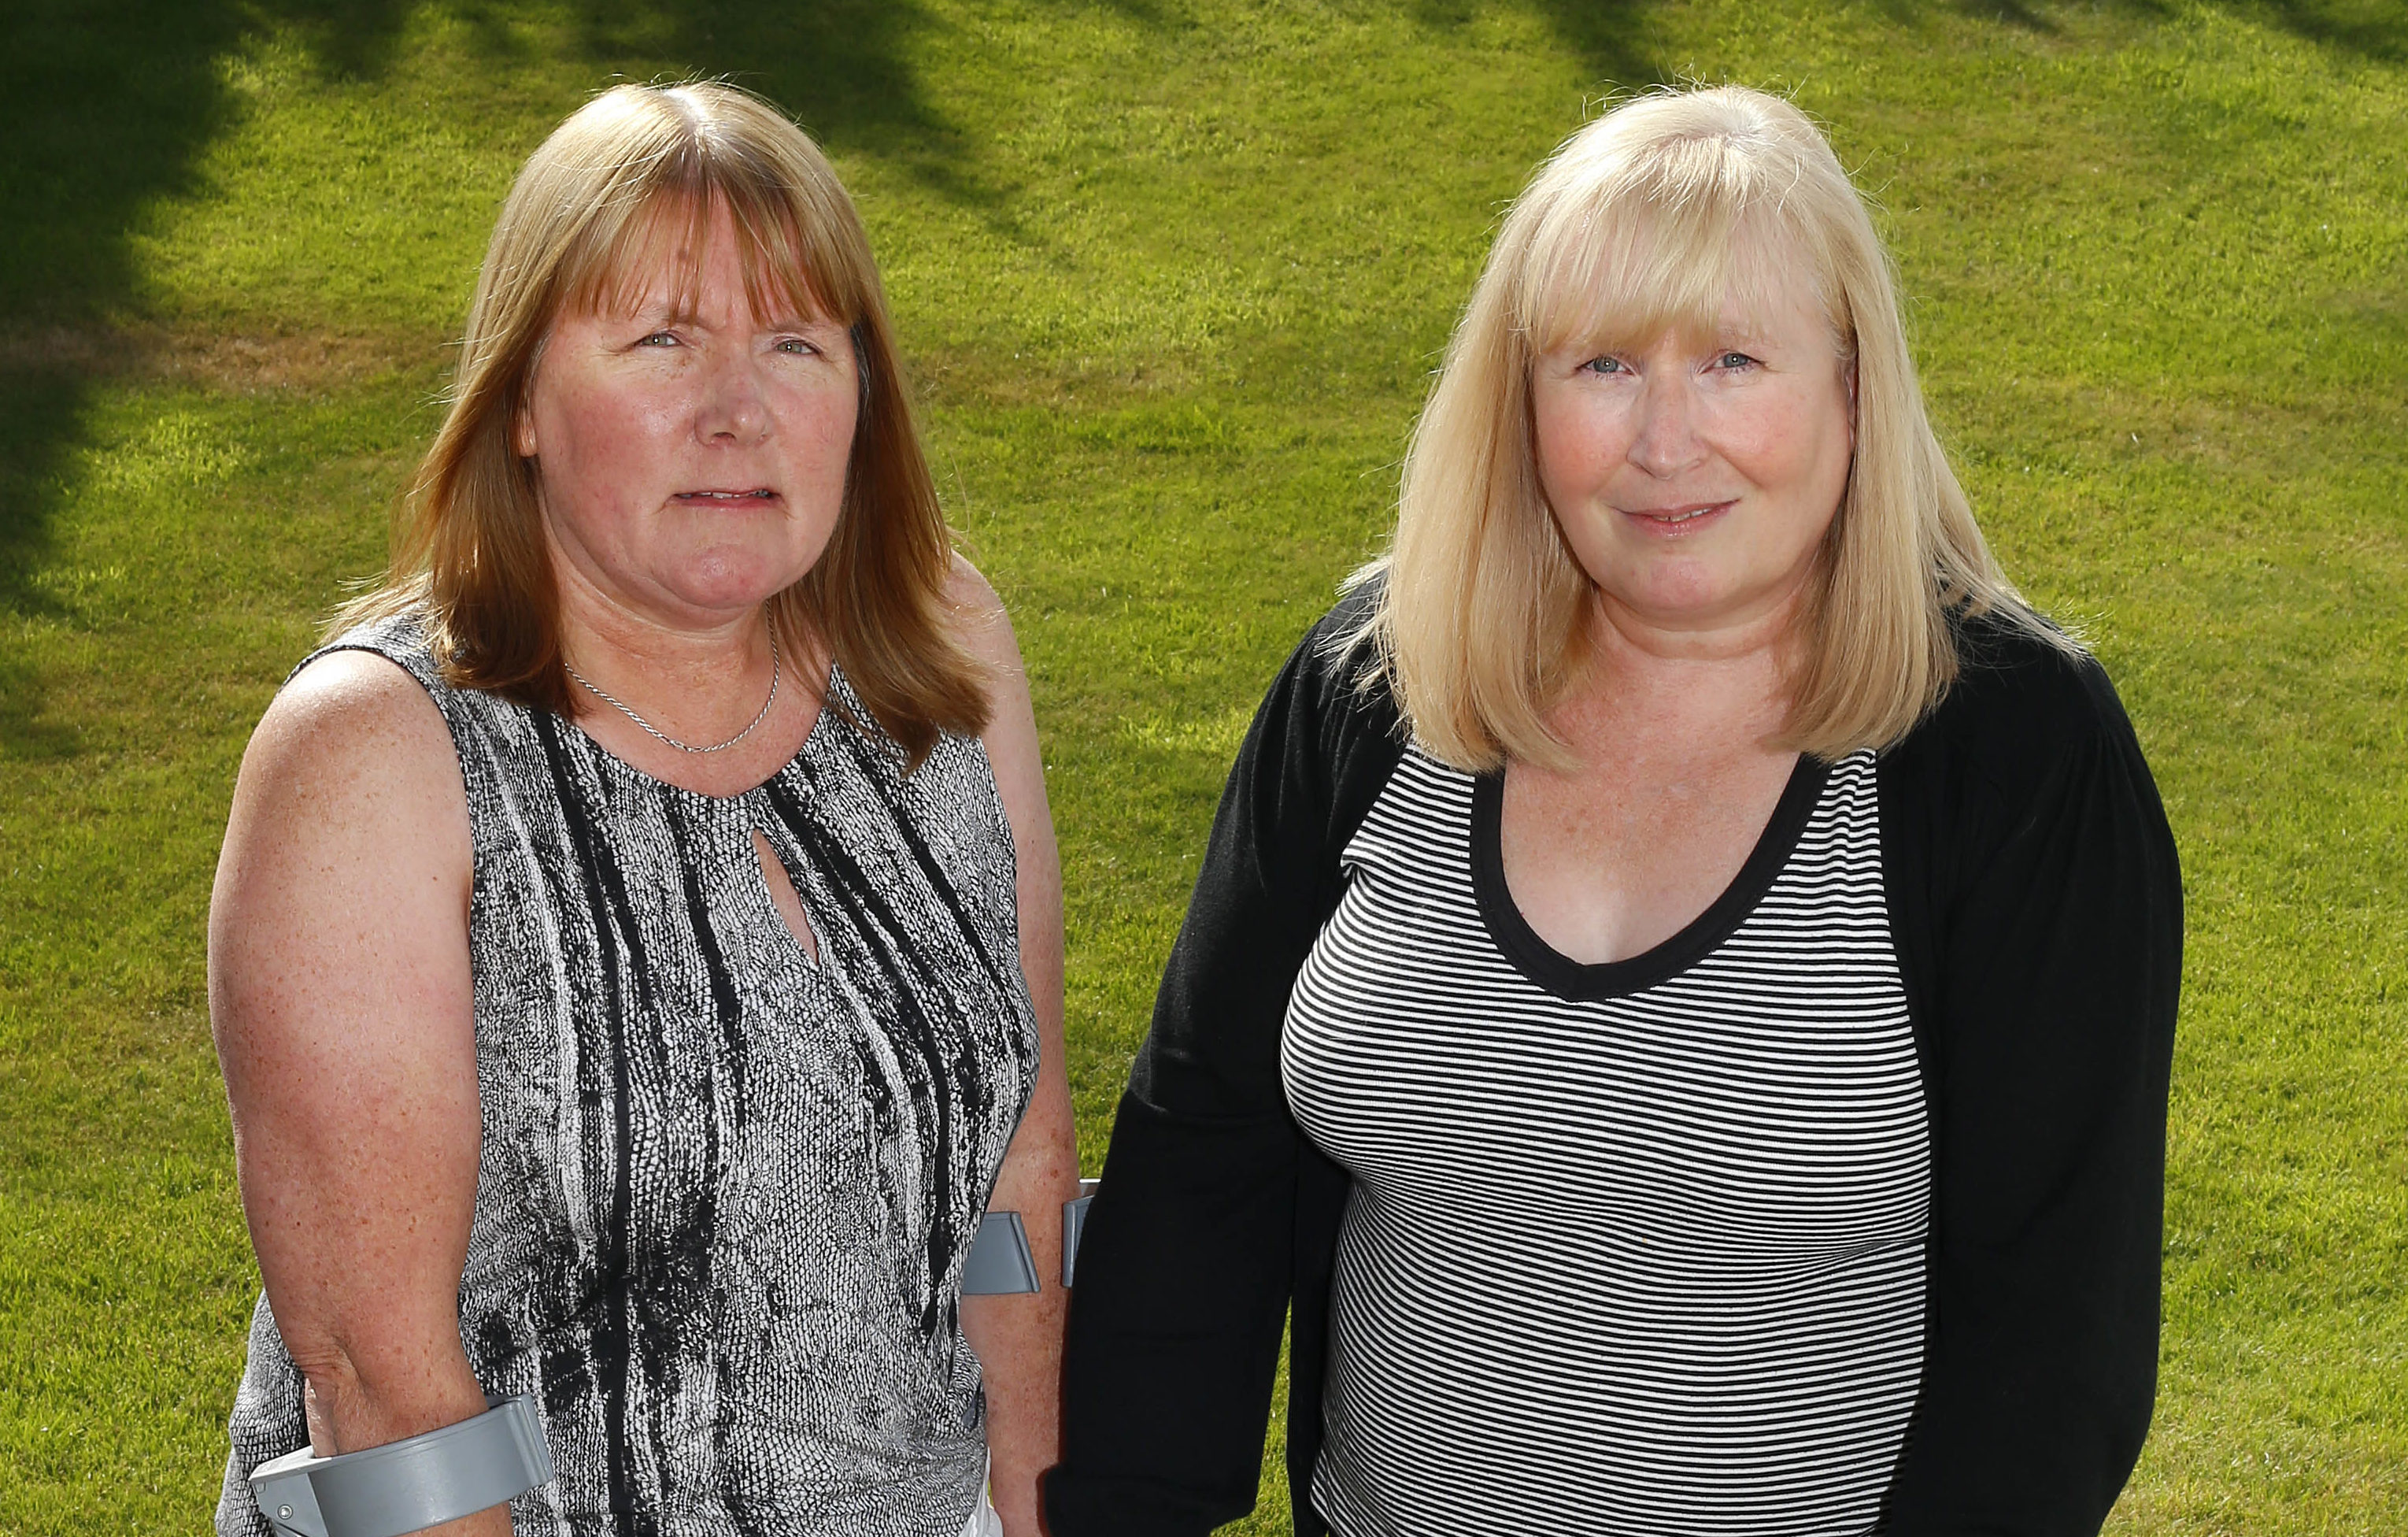 Mesh victims Elaine Holmes and Olive McIlroy (Garry F McHarg / Daily Record)